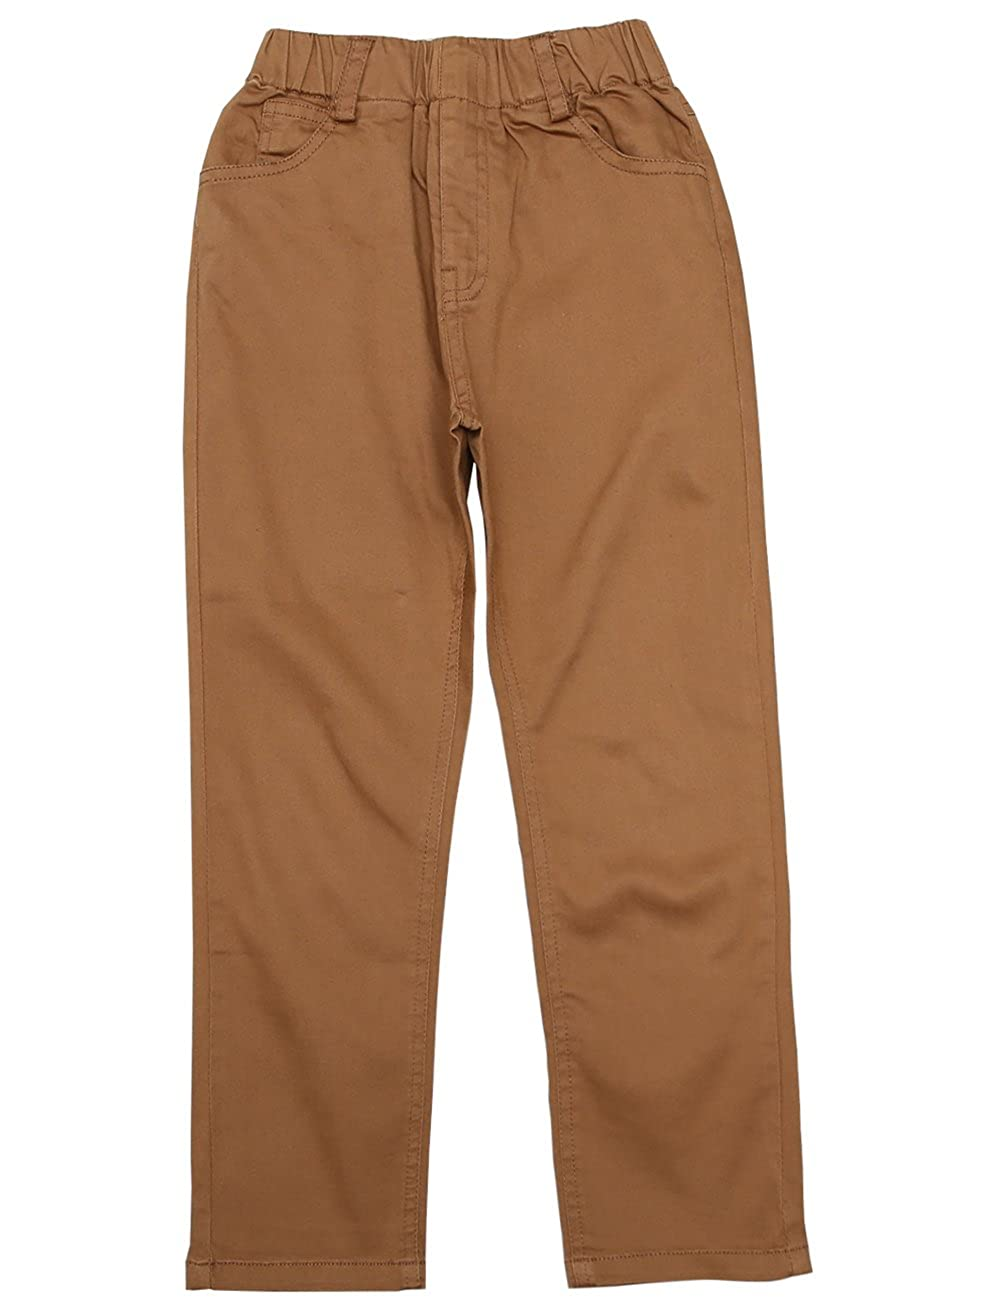 BYCR Boys' Elastic Waist Cotton Sweat Pant For Kids Size 5 12 No. 7160108162